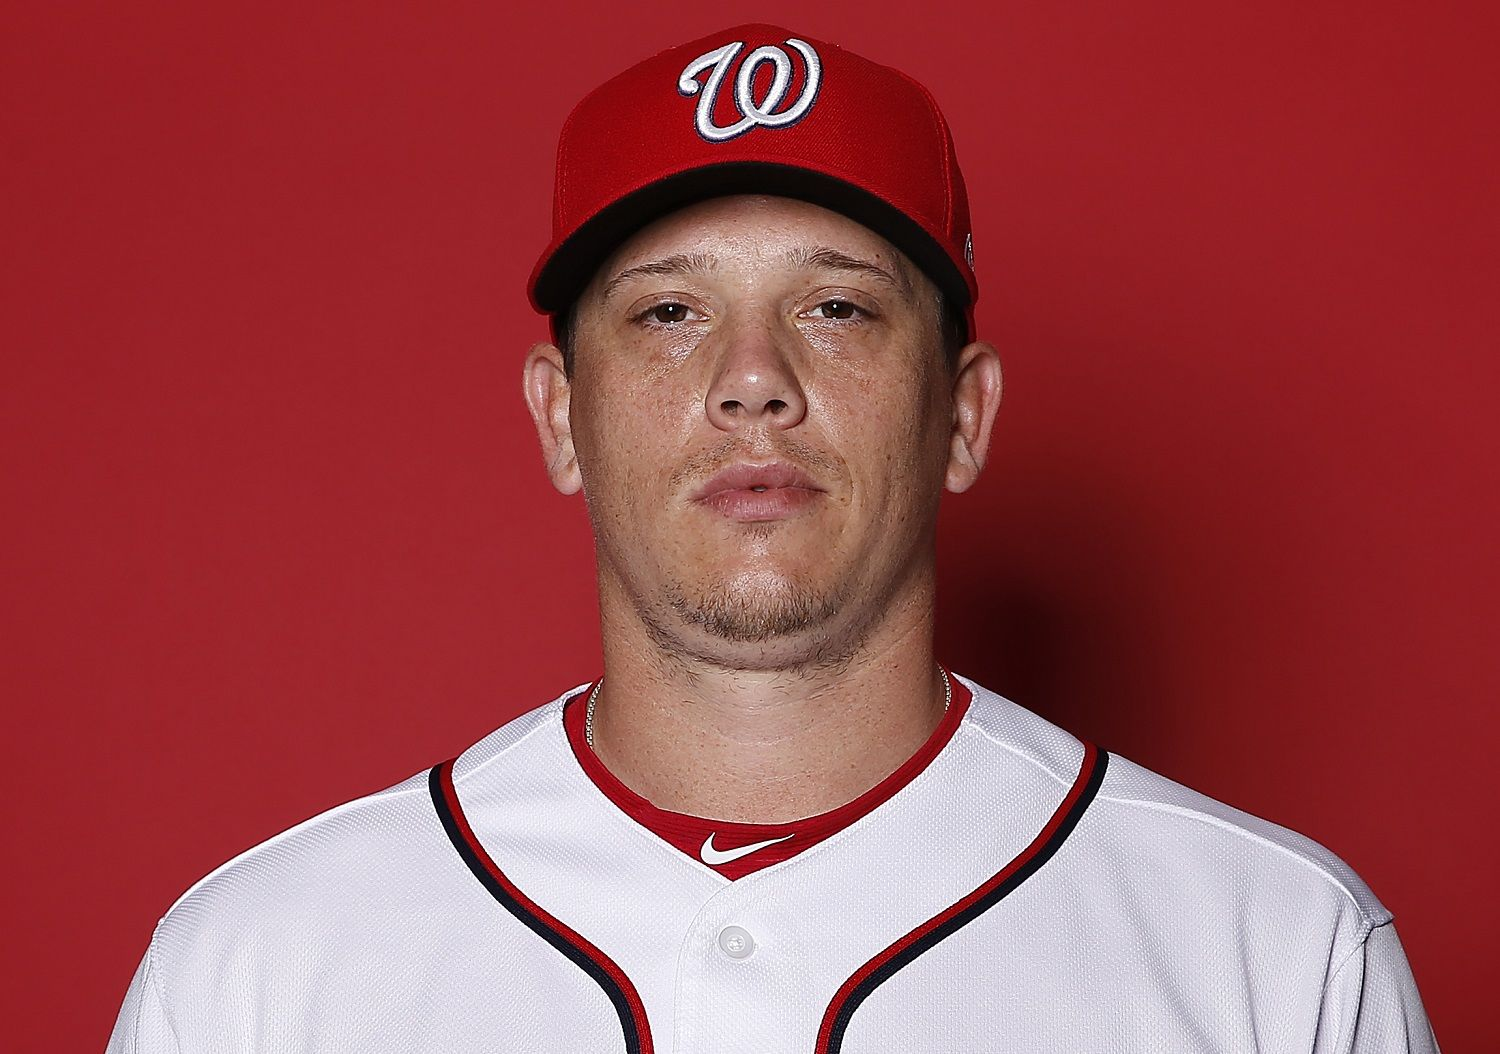 WEST PALM BEACH, FLORIDA - FEBRUARY 22:  Jeremy Hellickson #58 of the Washington Nationals poses for a portrait on Photo Day at FITTEAM Ballpark of The Palm Beaches during on February 22, 2019 in West Palm Beach, Florida. (Photo by Michael Reaves/Getty Images)